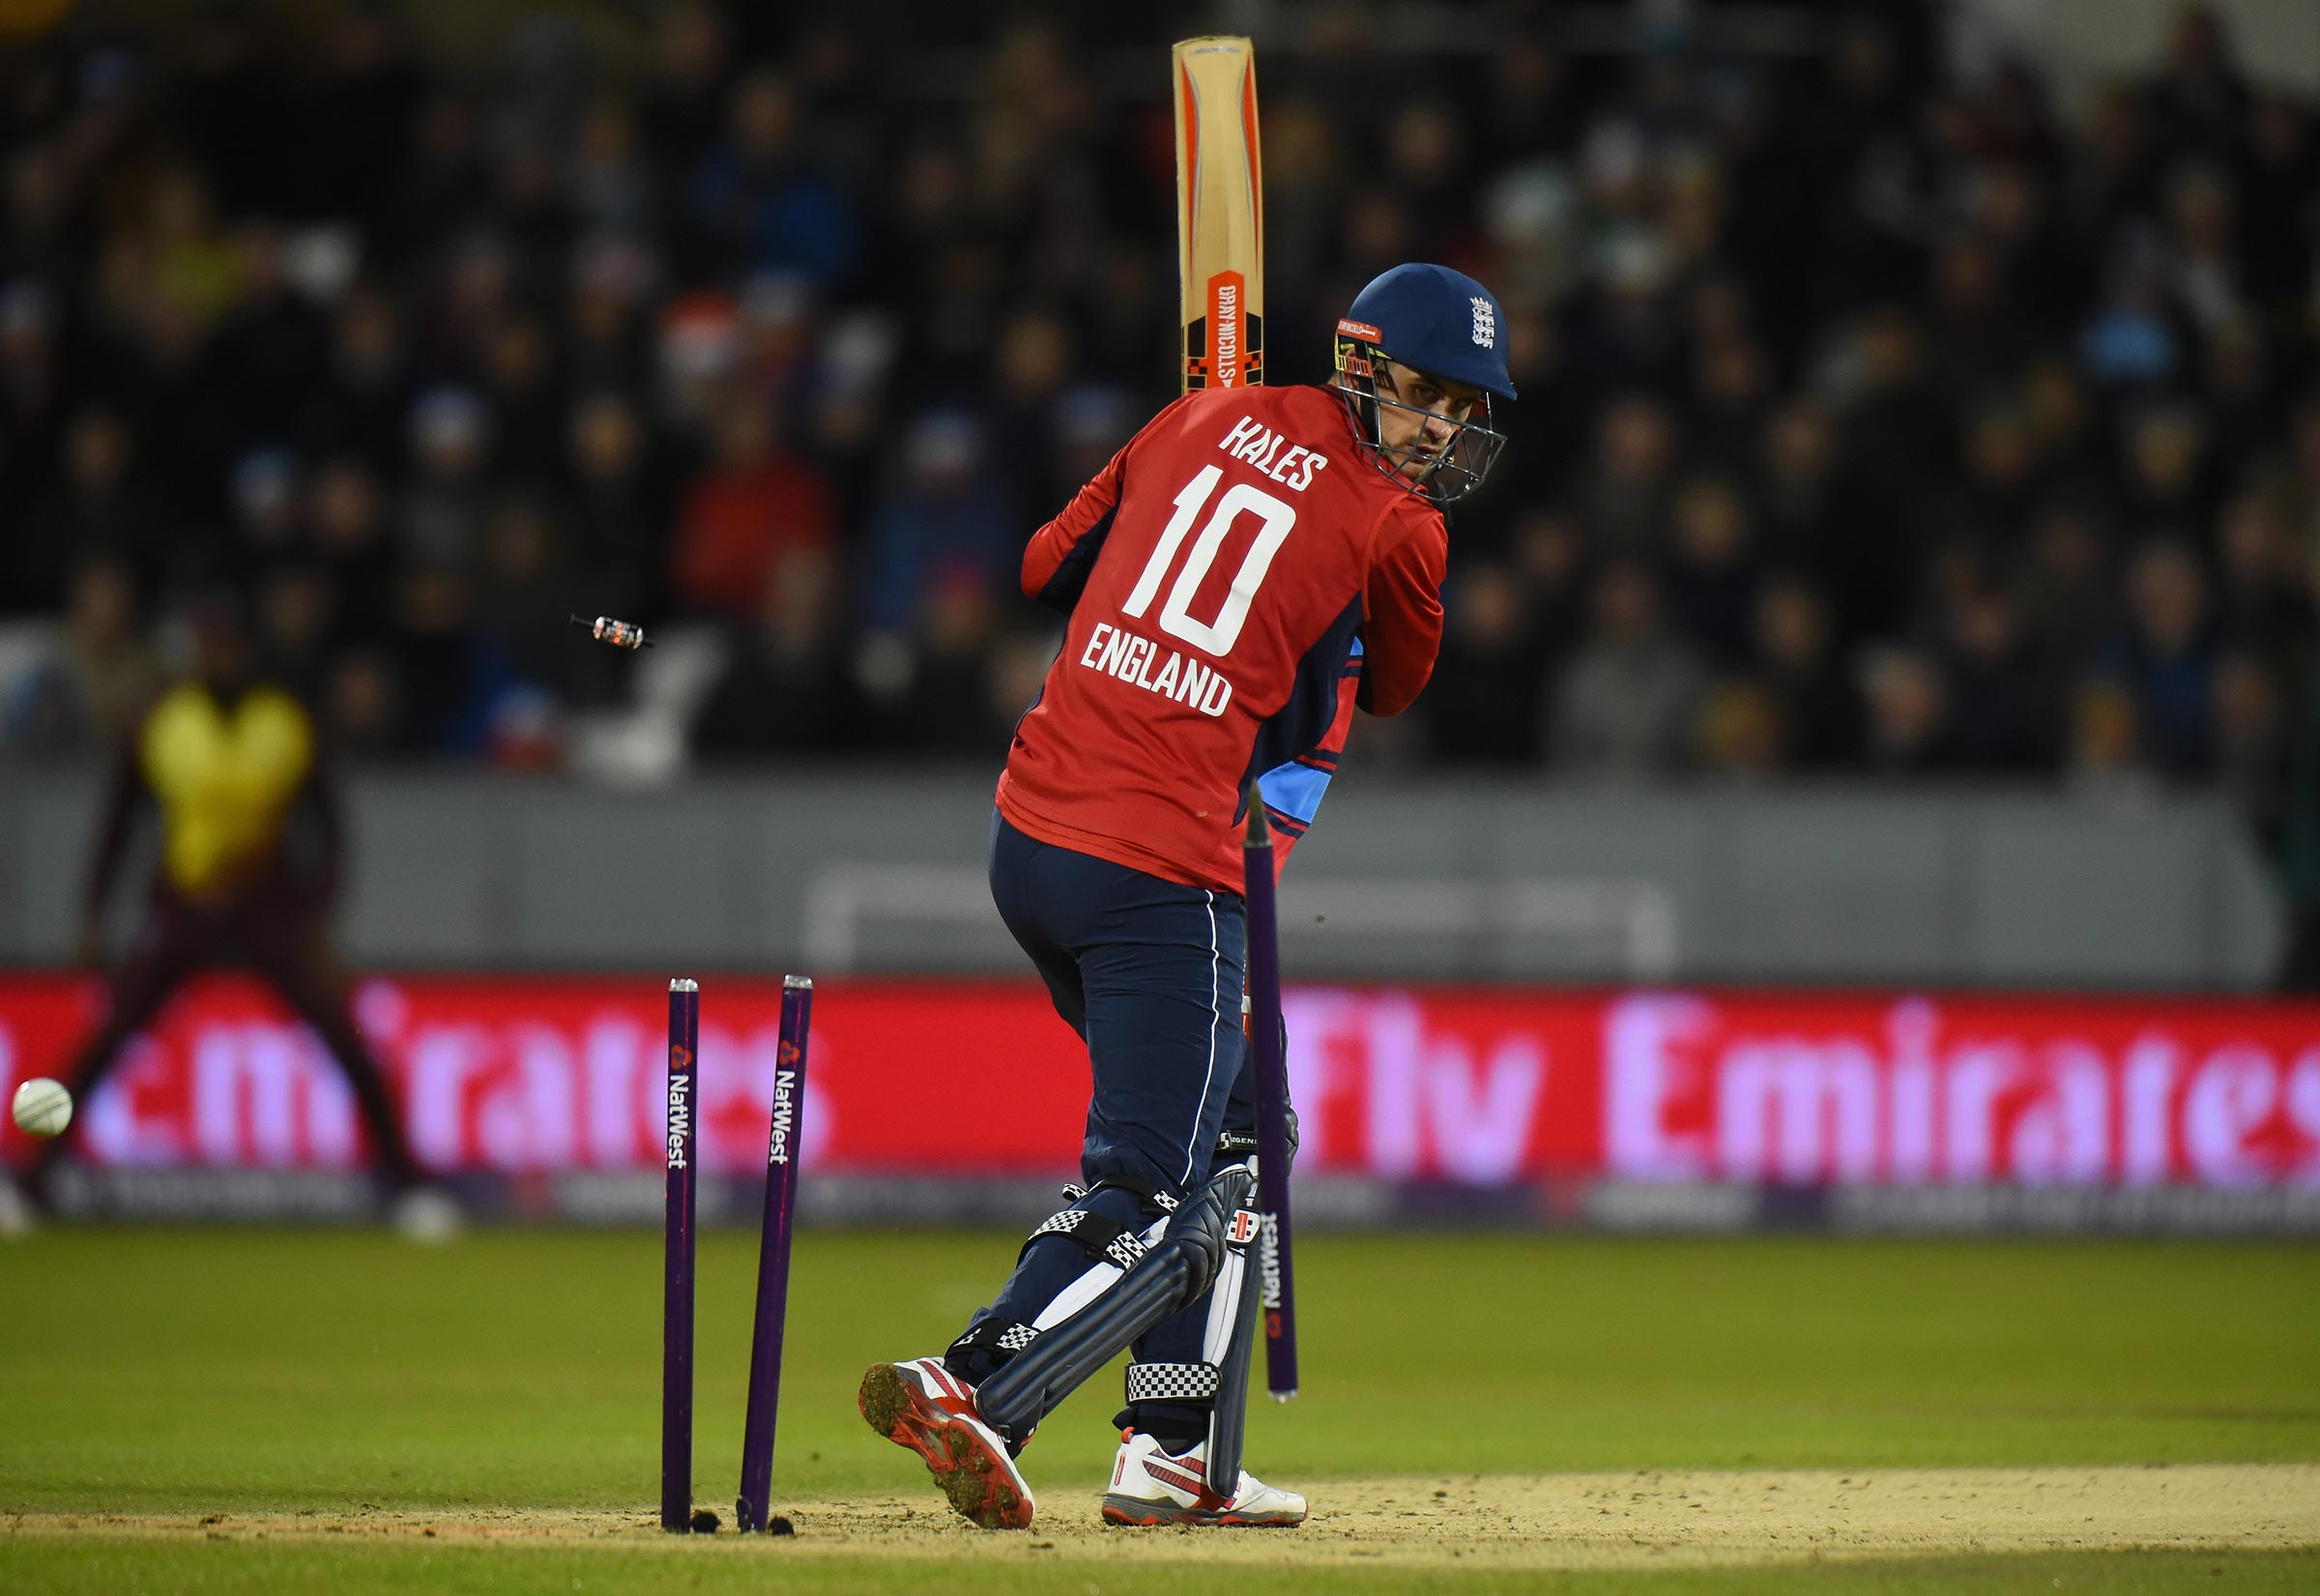 Hales' rapid innings was ended by Brathwaite // Getty